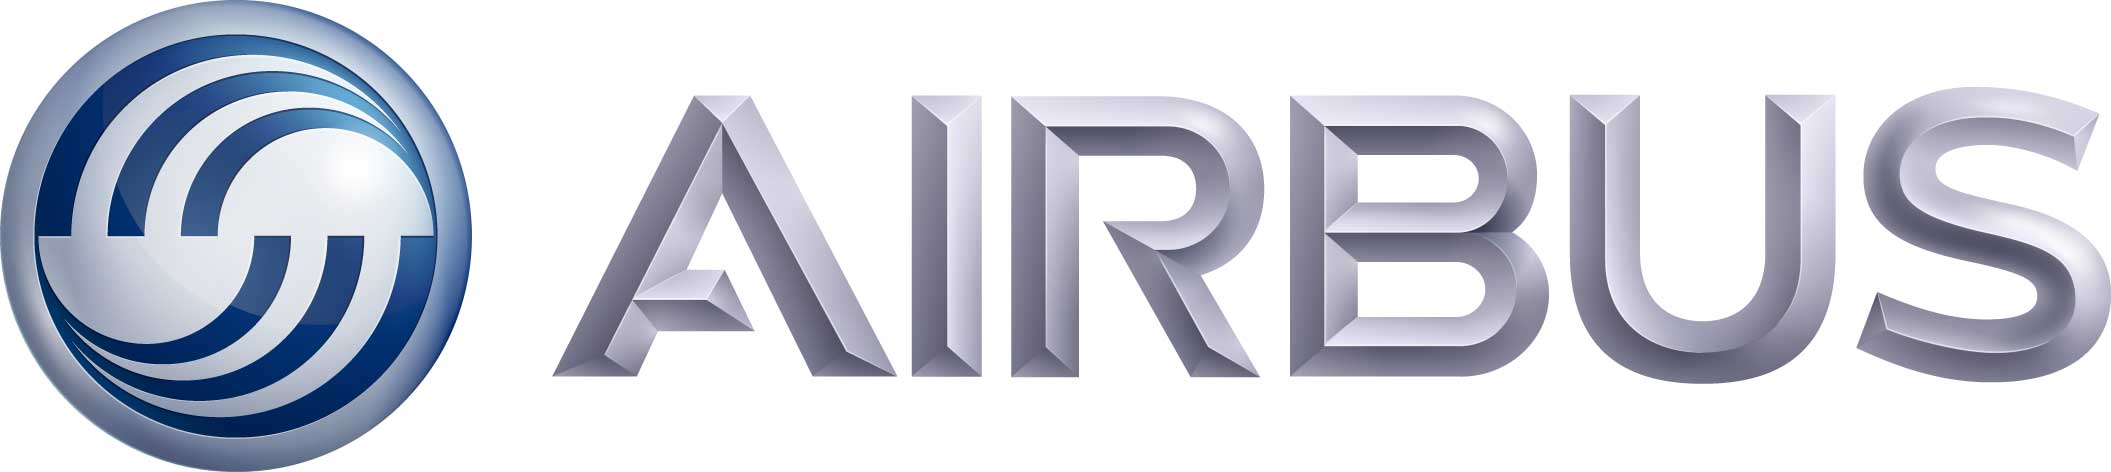 airbus png transparent airbus png images pluspng happy birthday free clipart images happy birthday clipart free